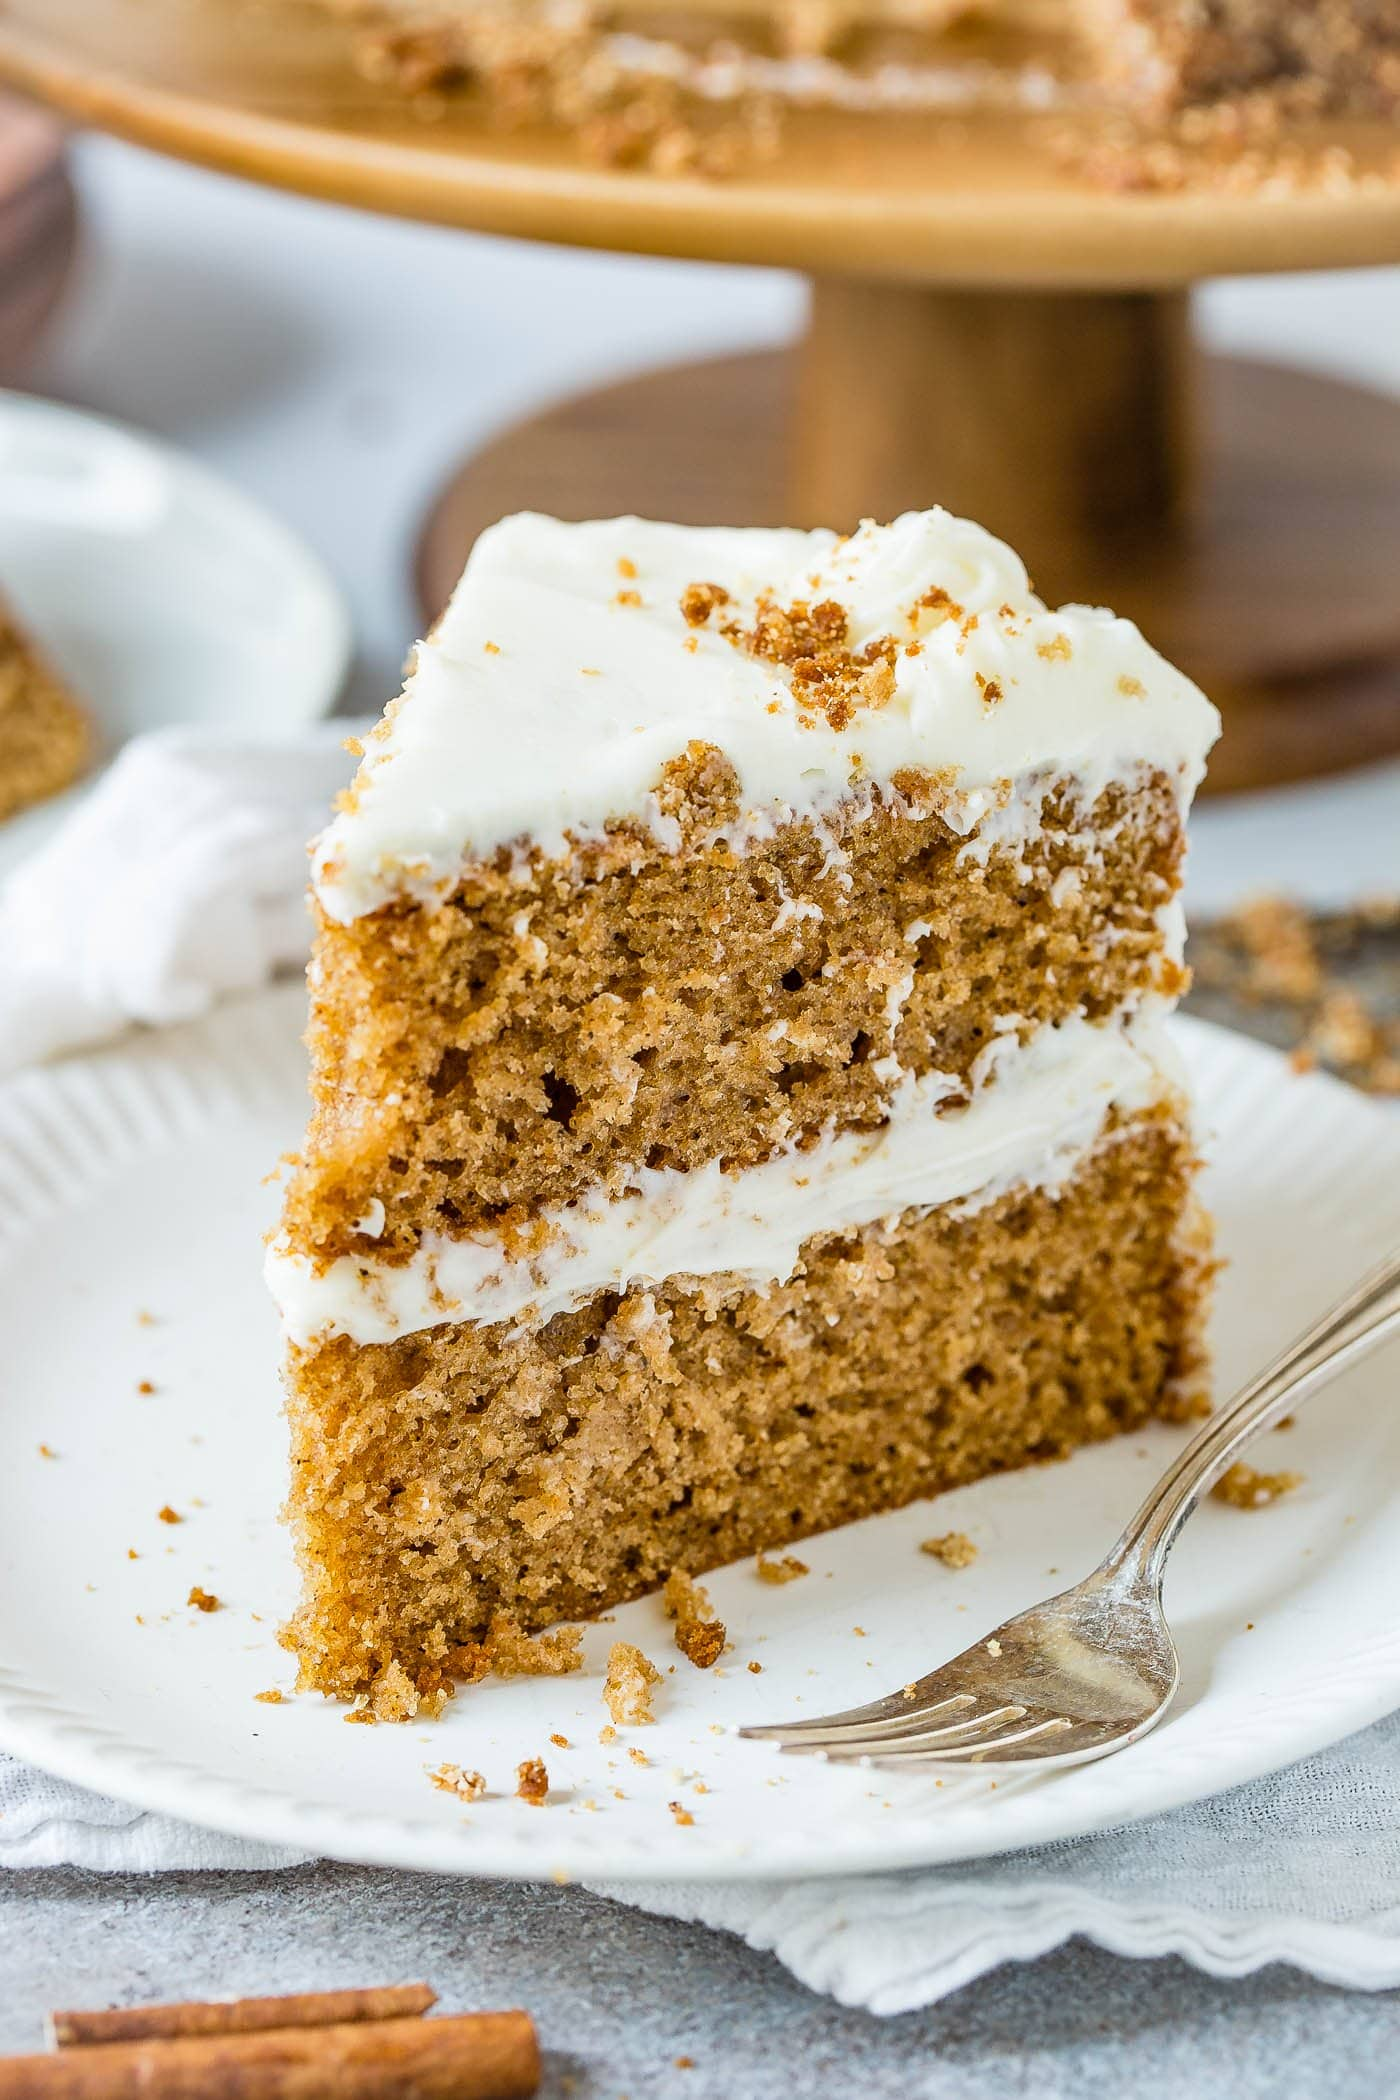 A slice of two layer spice cake frosted with cream cheese frosting. The cake is on a white dessert plate with a fork next to it.